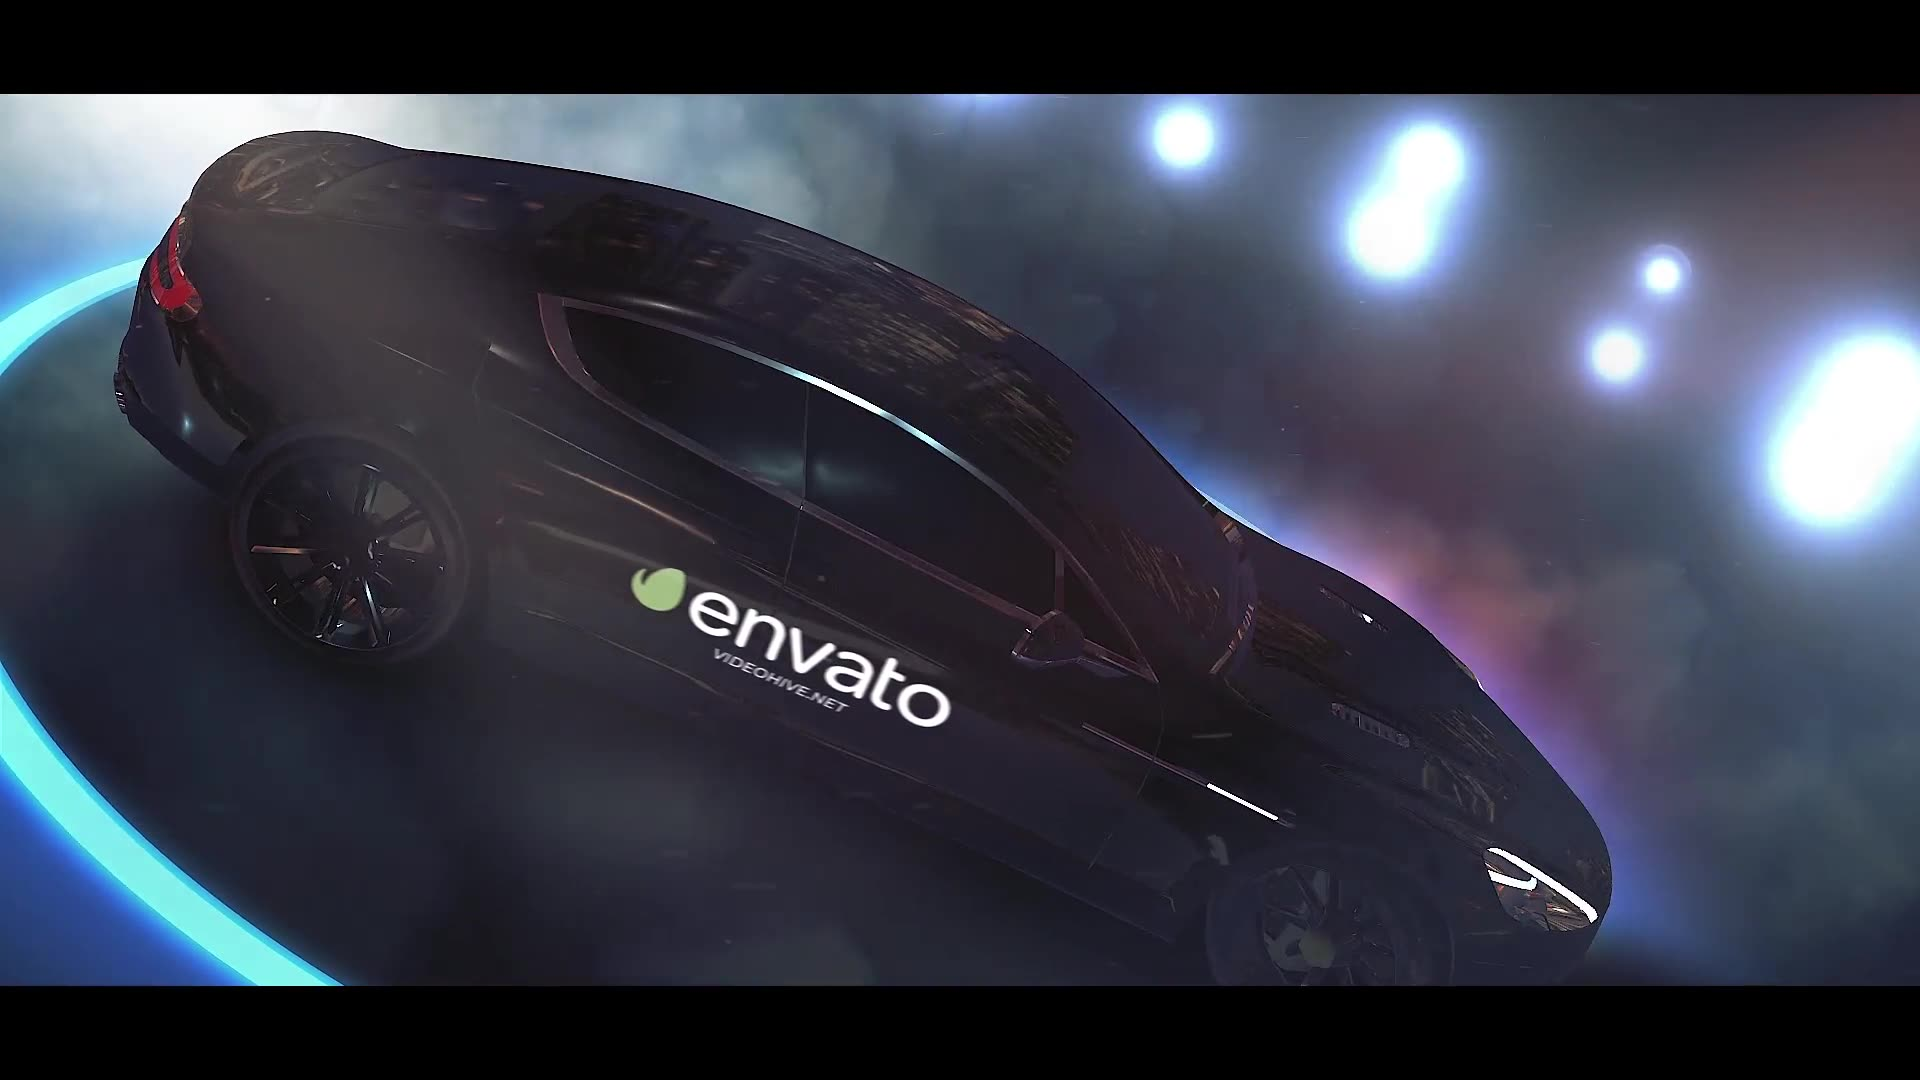 Dynamic Car Intro Videohive 29149720 After Effects Image 3